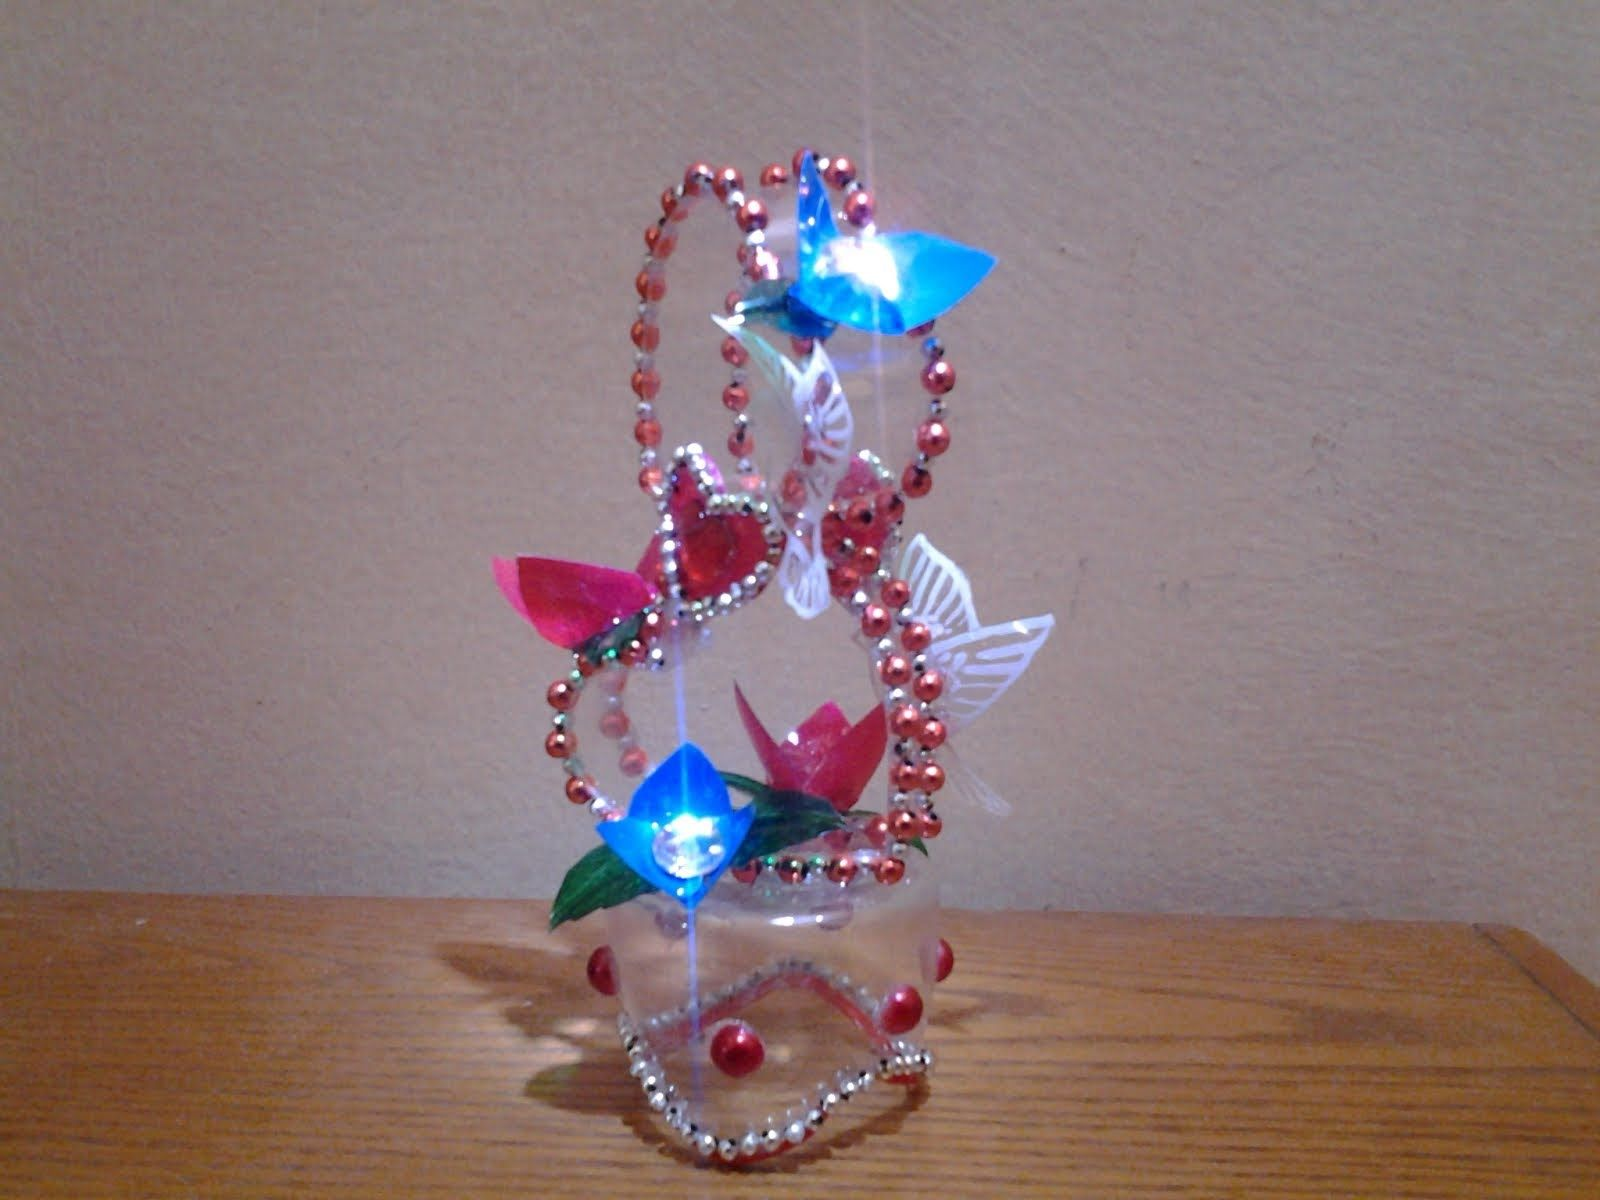 Best out of waste plastic bottle transformed to lovely for Craft using waste bottles